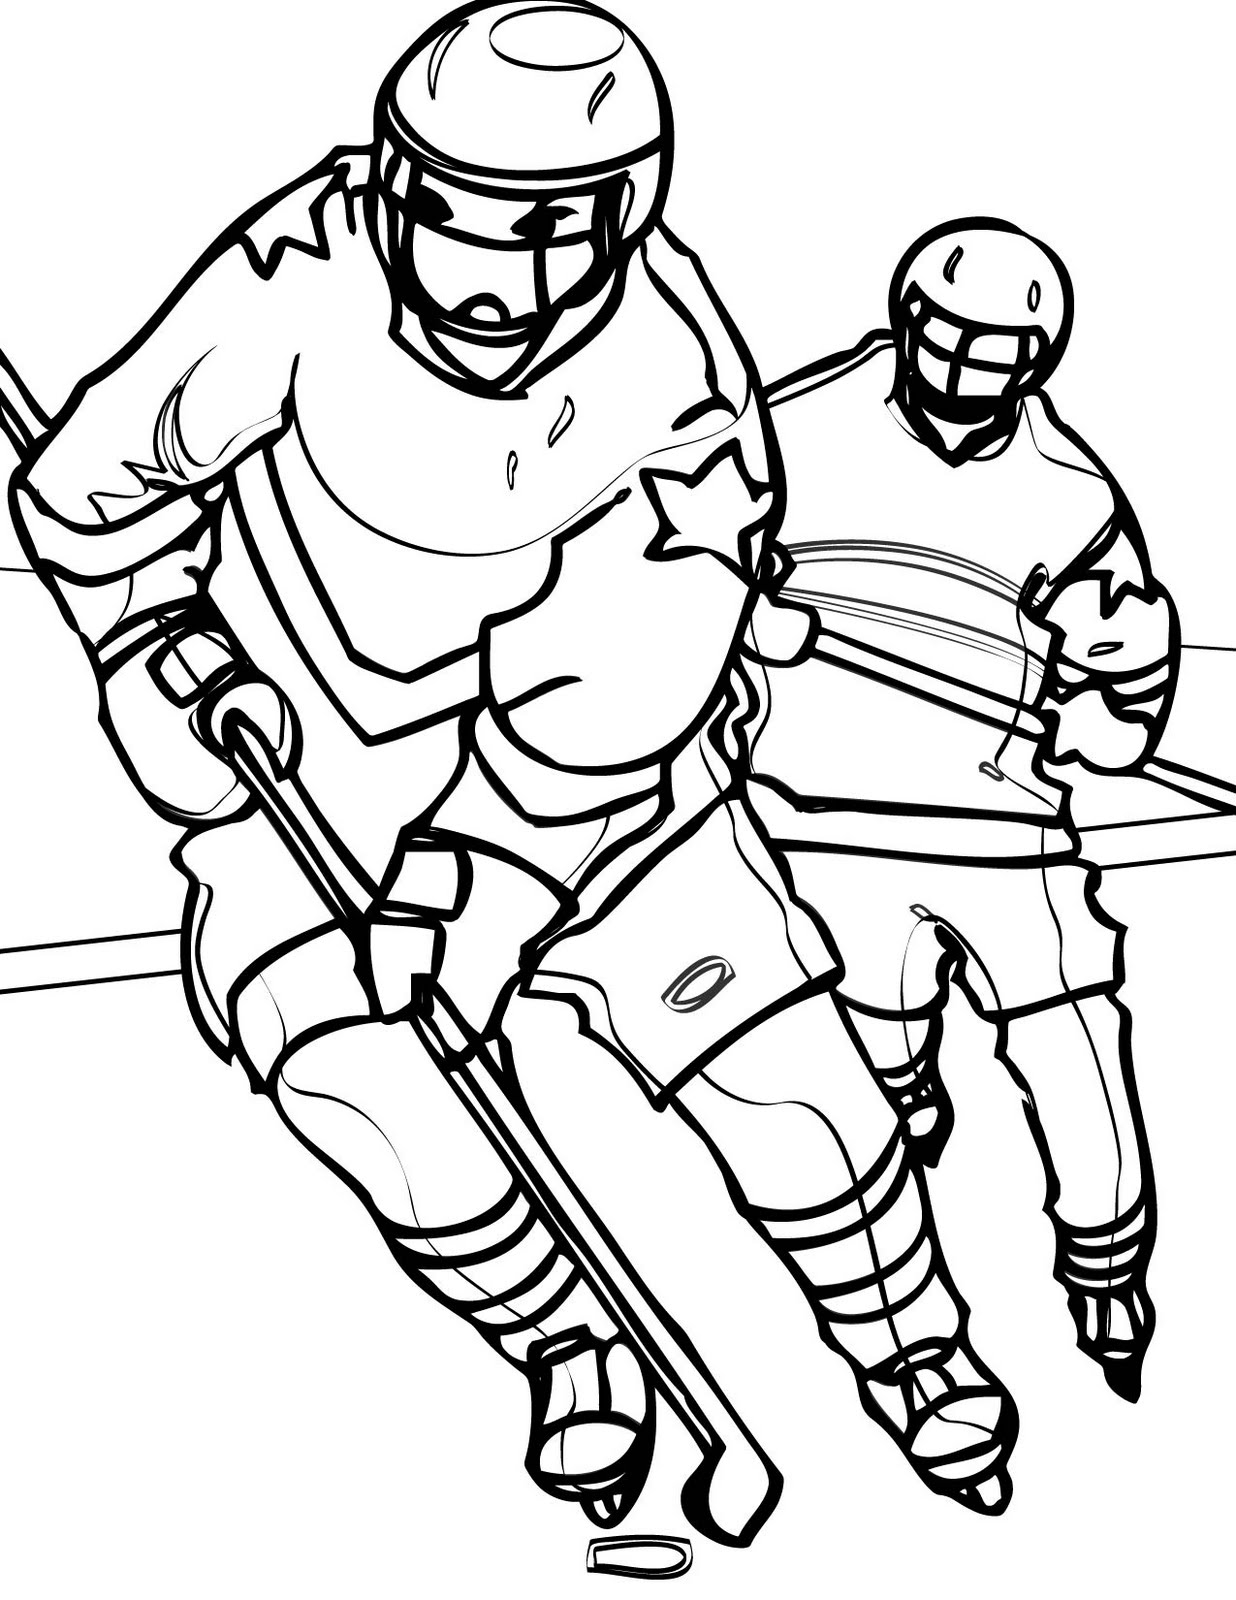 hockey coloring pages learn to coloring. Black Bedroom Furniture Sets. Home Design Ideas